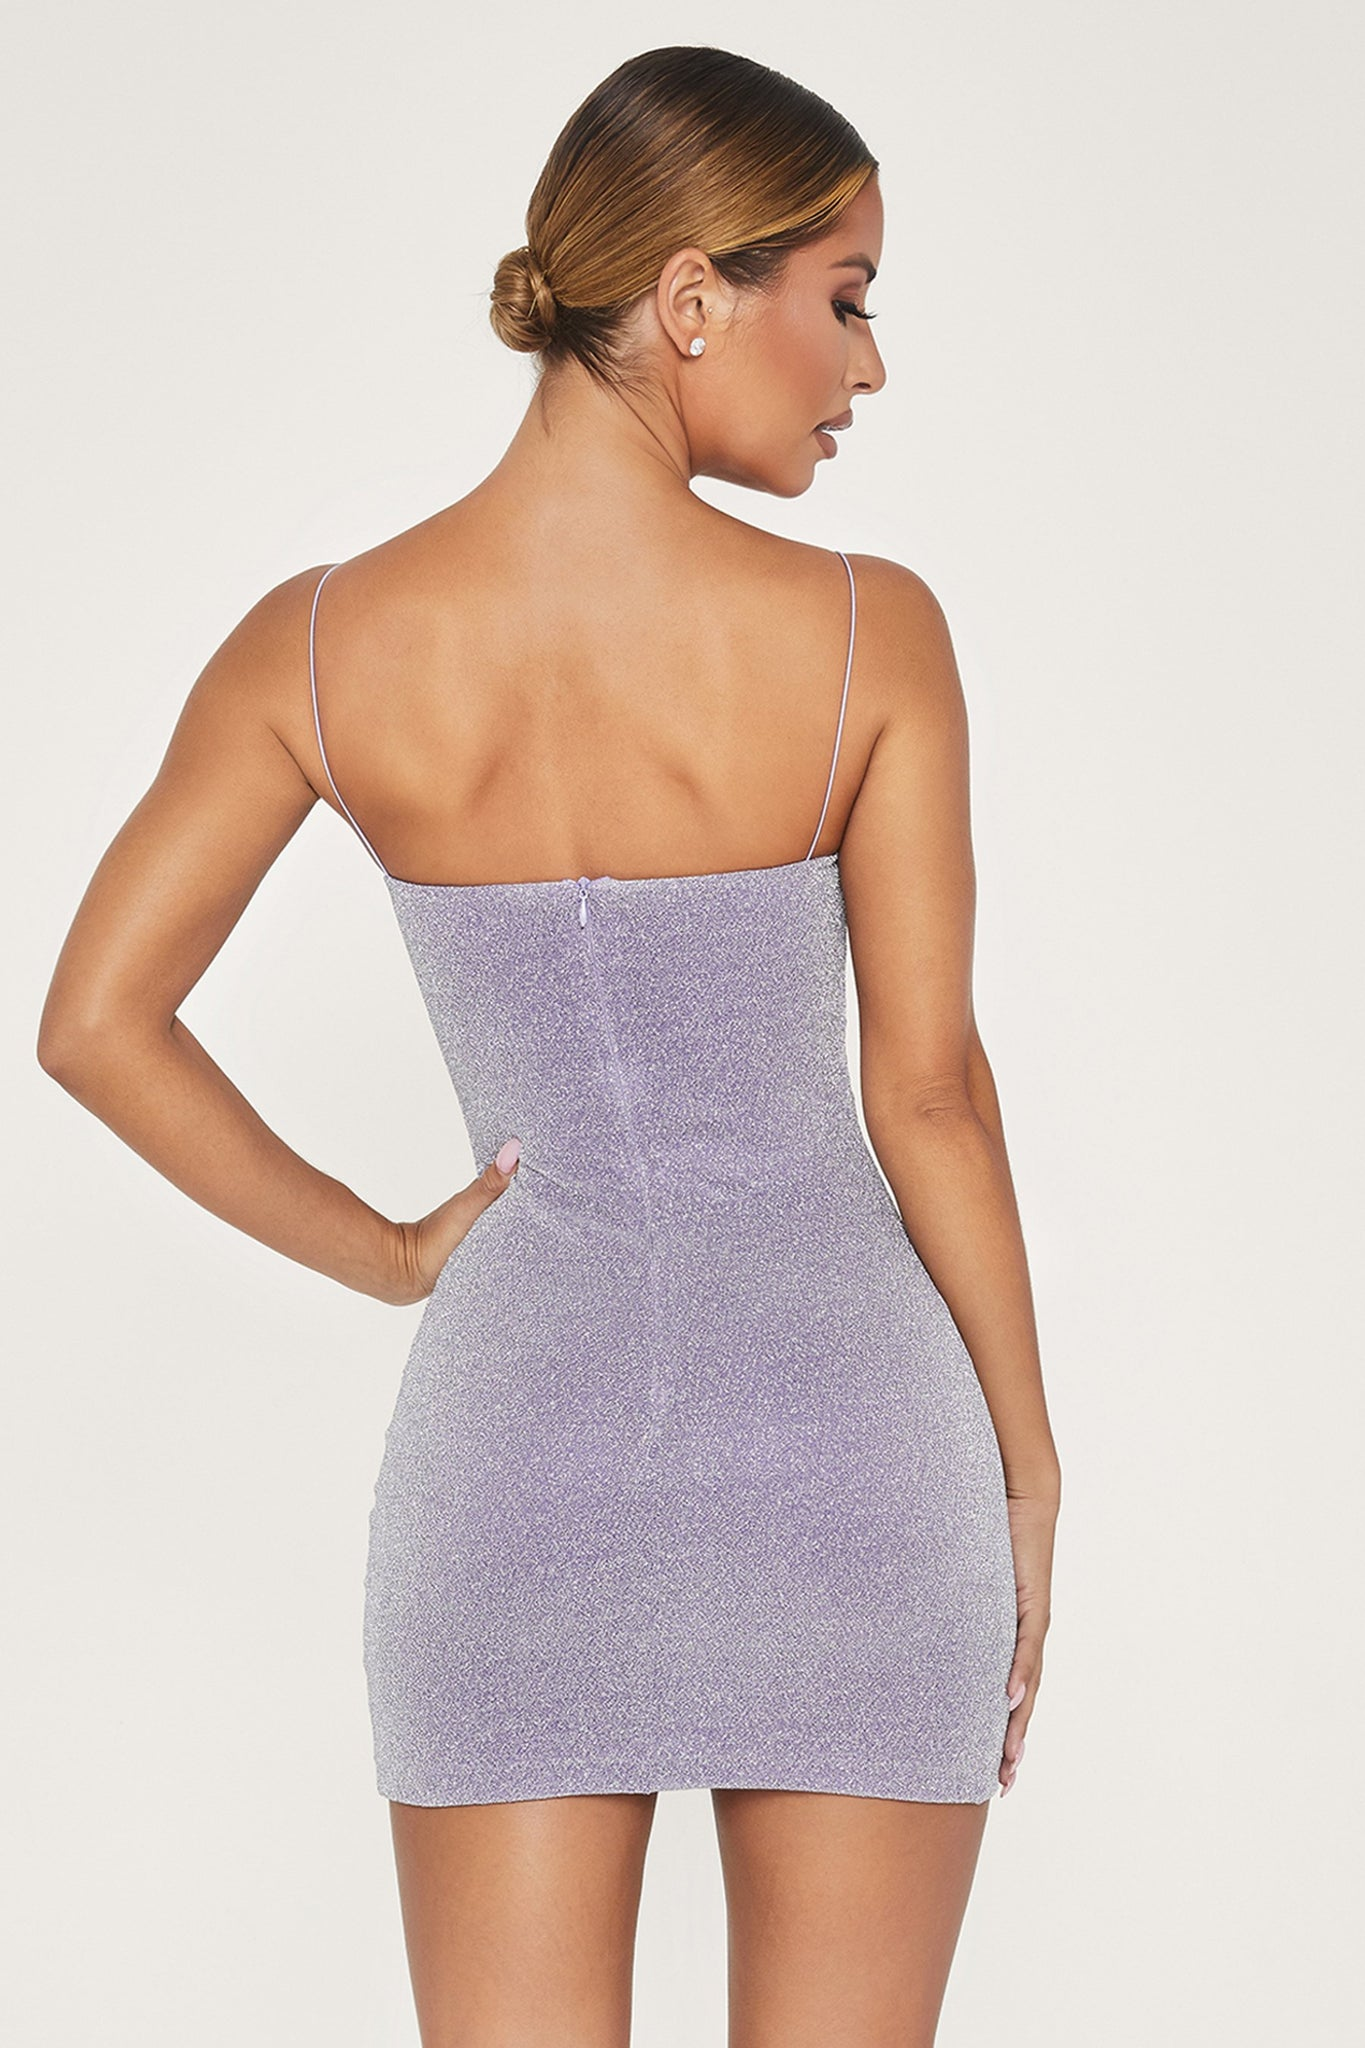 Mia Thin Strap Shimmer Dress - Lilac - MESHKI